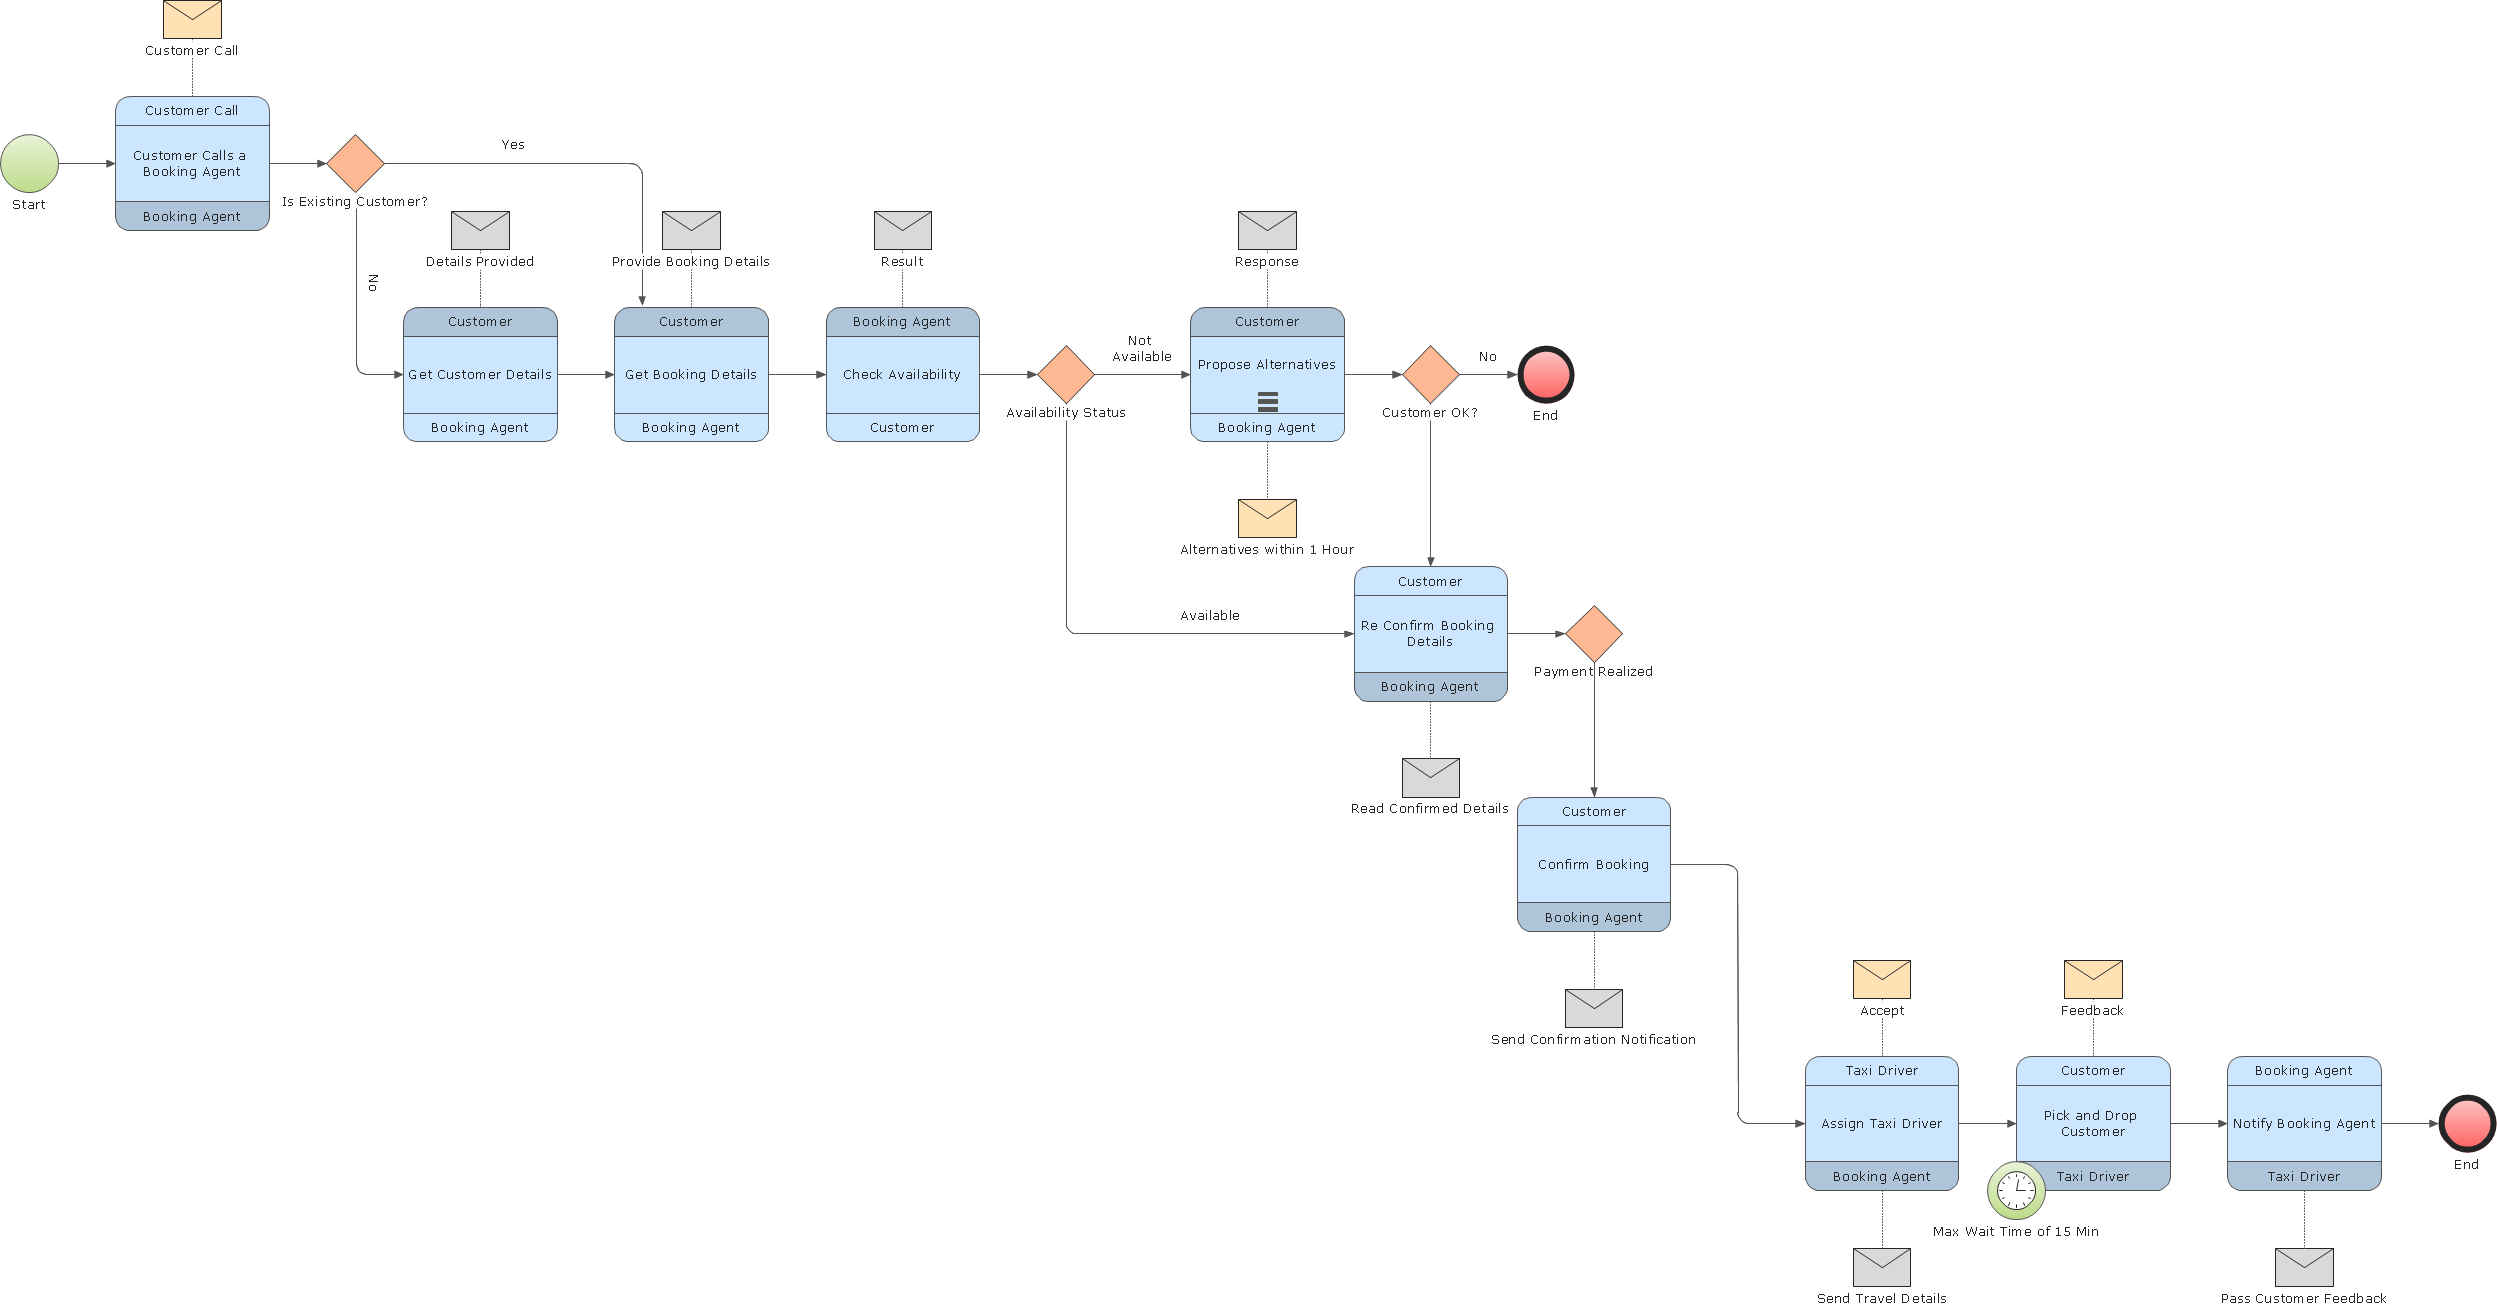 Business process example network topologys business process model thailand map asia vizio remote not working c214932ef96b74691f530ba6f61b1884 business process modelhtml ccuart Image collections